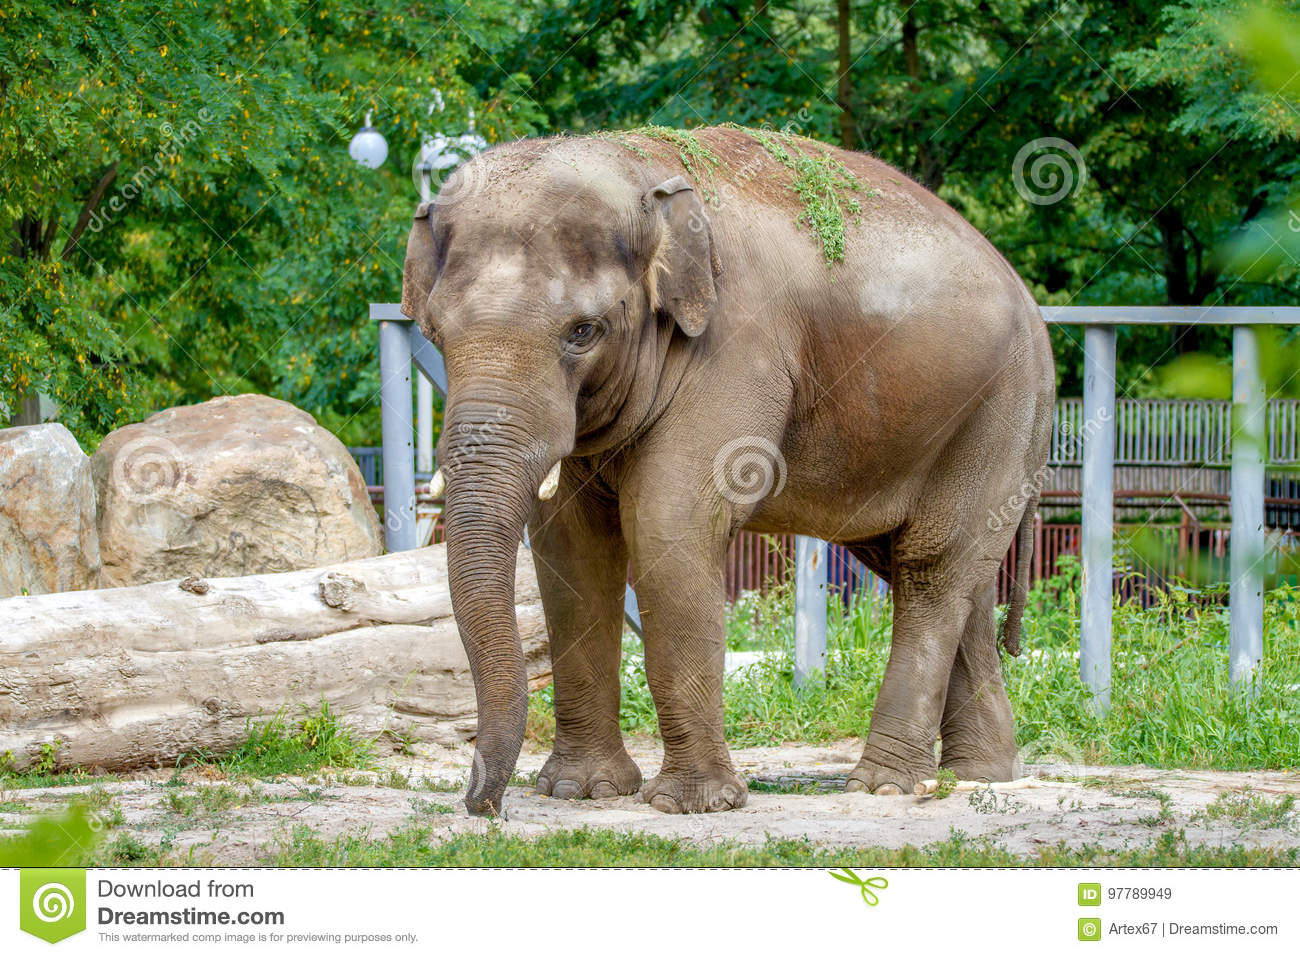 Large Elephant Walks In The Enclosure Of The Zoo Stock Image - Image